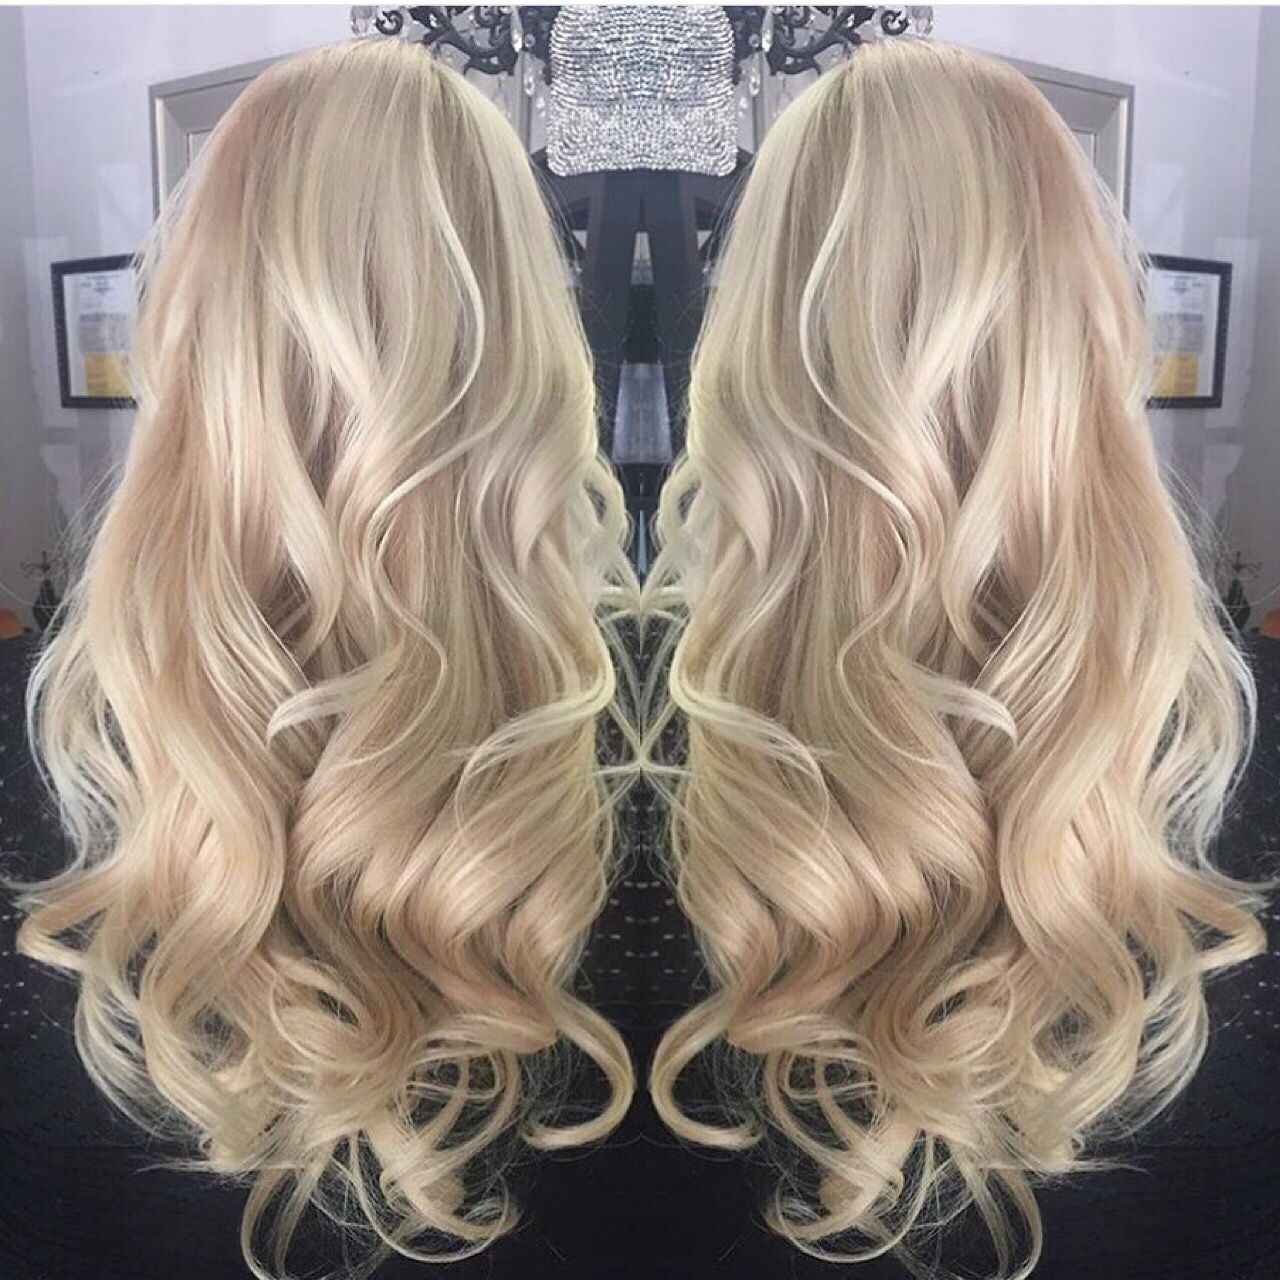 Get this beautiful hair with our Bleach Blonde